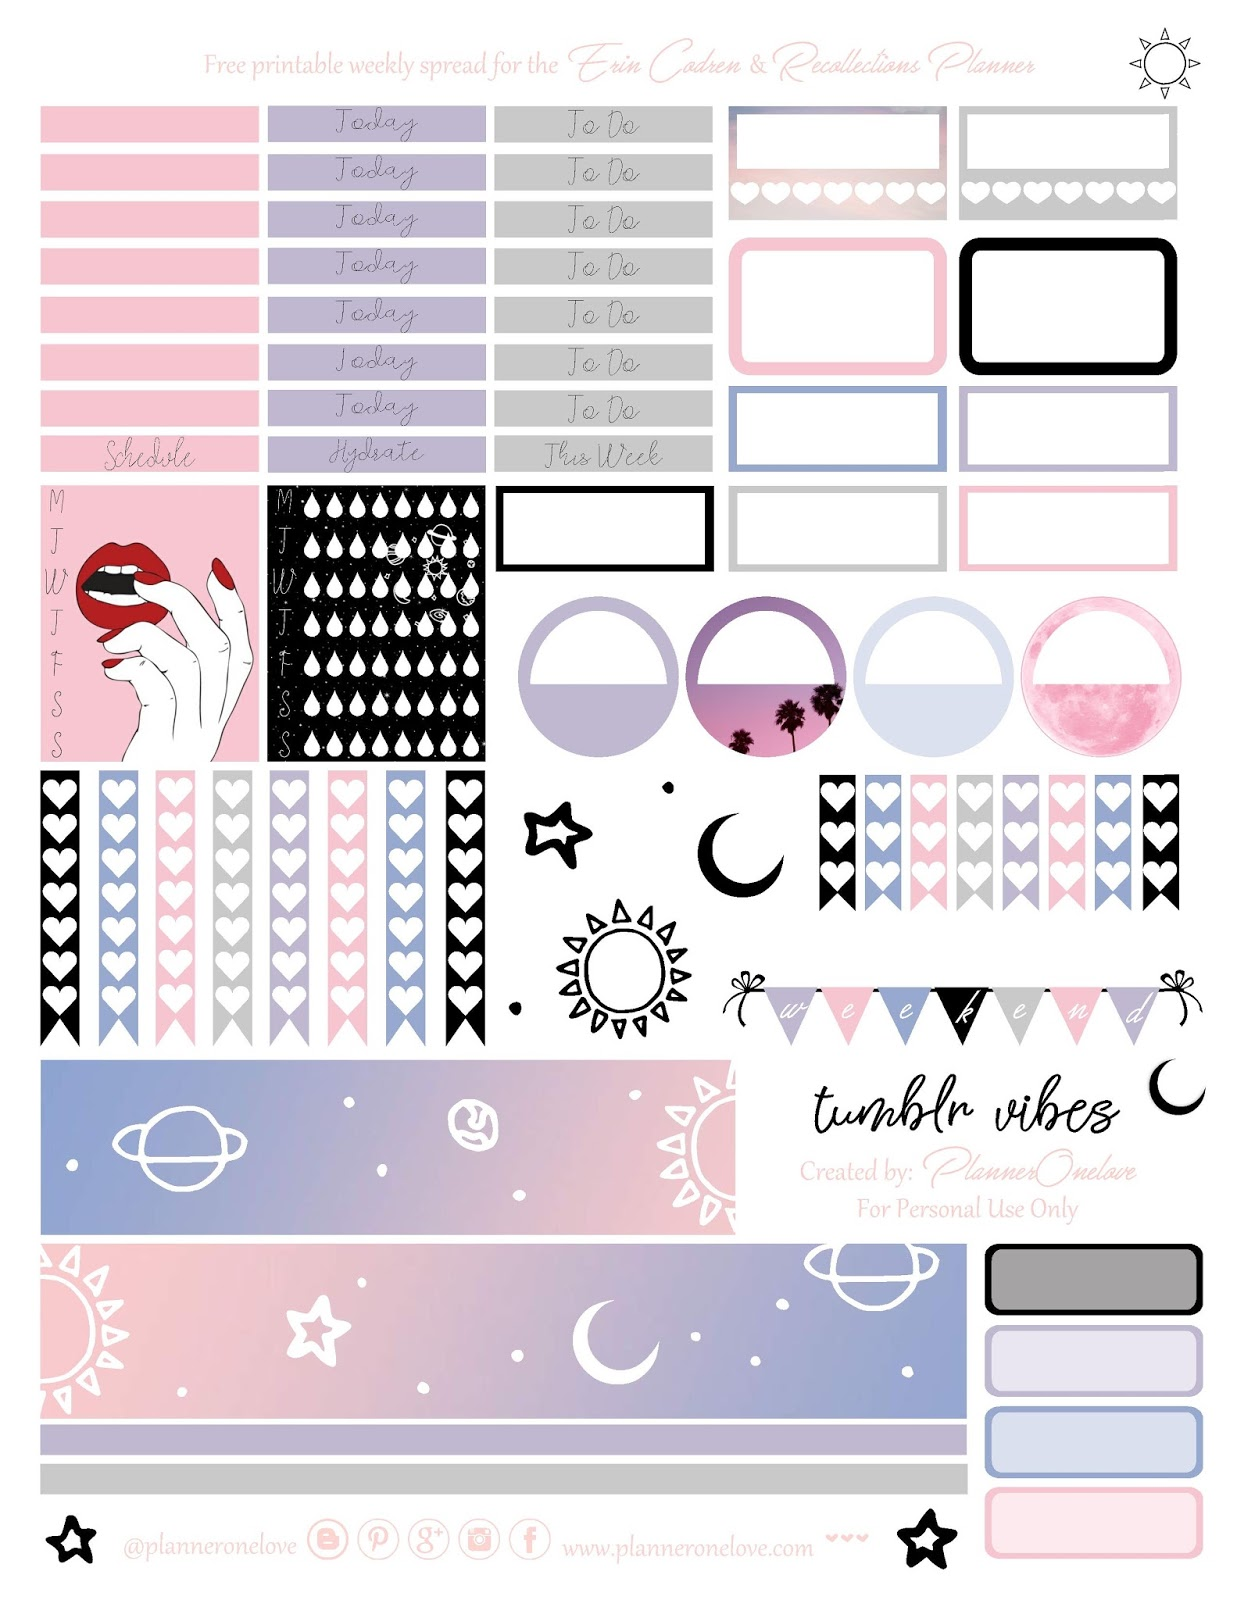 free tumblr vibes printable planner stickers for the erin condren